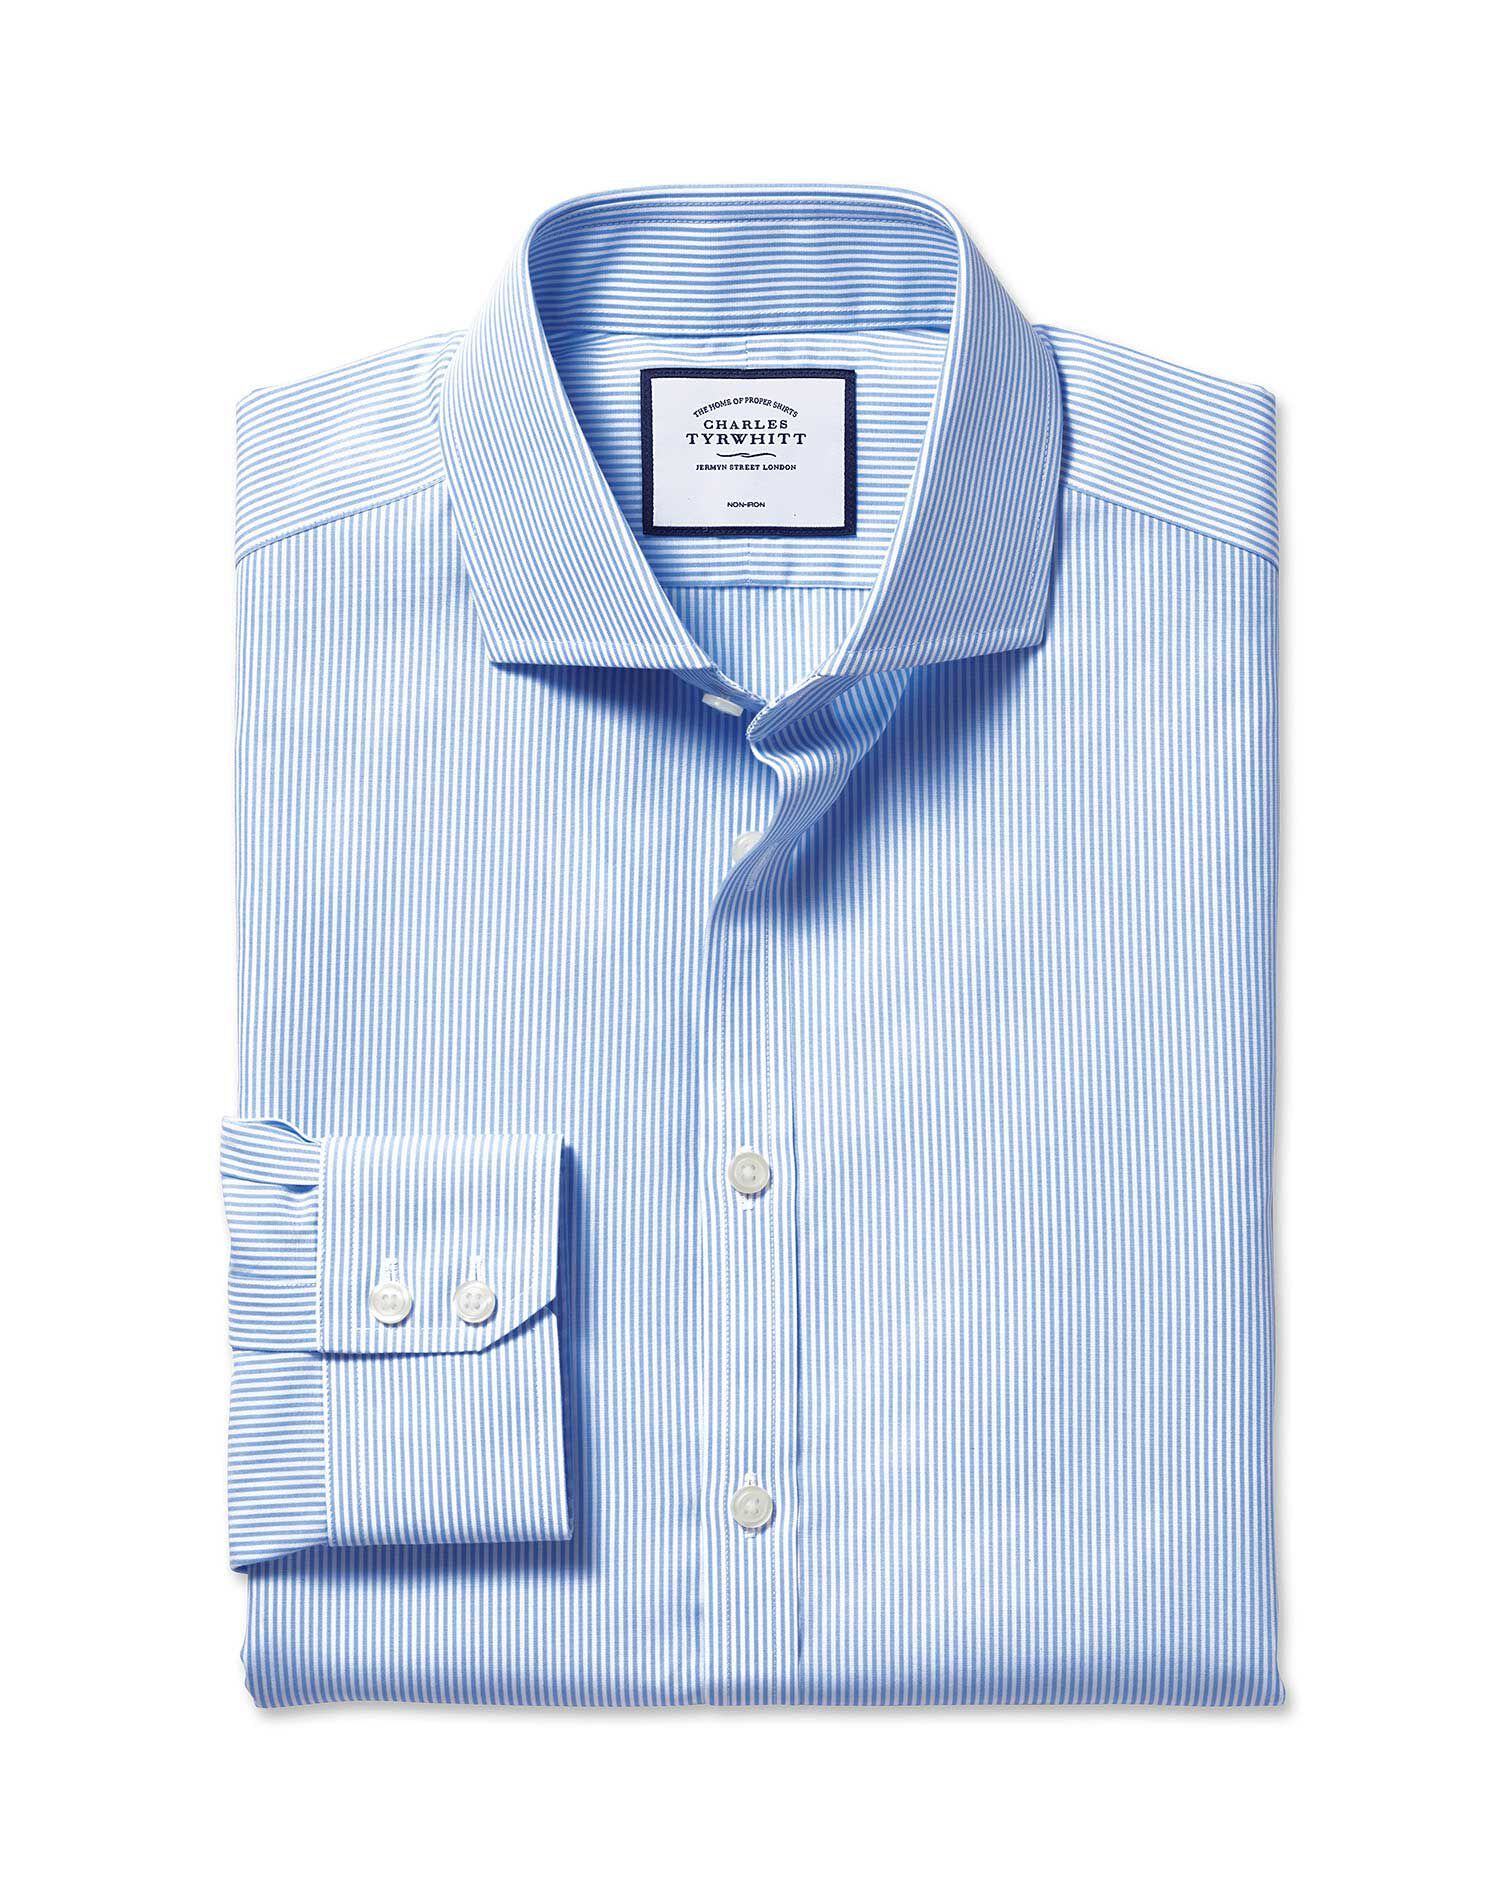 Extra Slim Fit Cutaway Non-Iron Bengal Stripe Sky Blue Cotton Formal Shirt Double Cuff Size 16.5/35